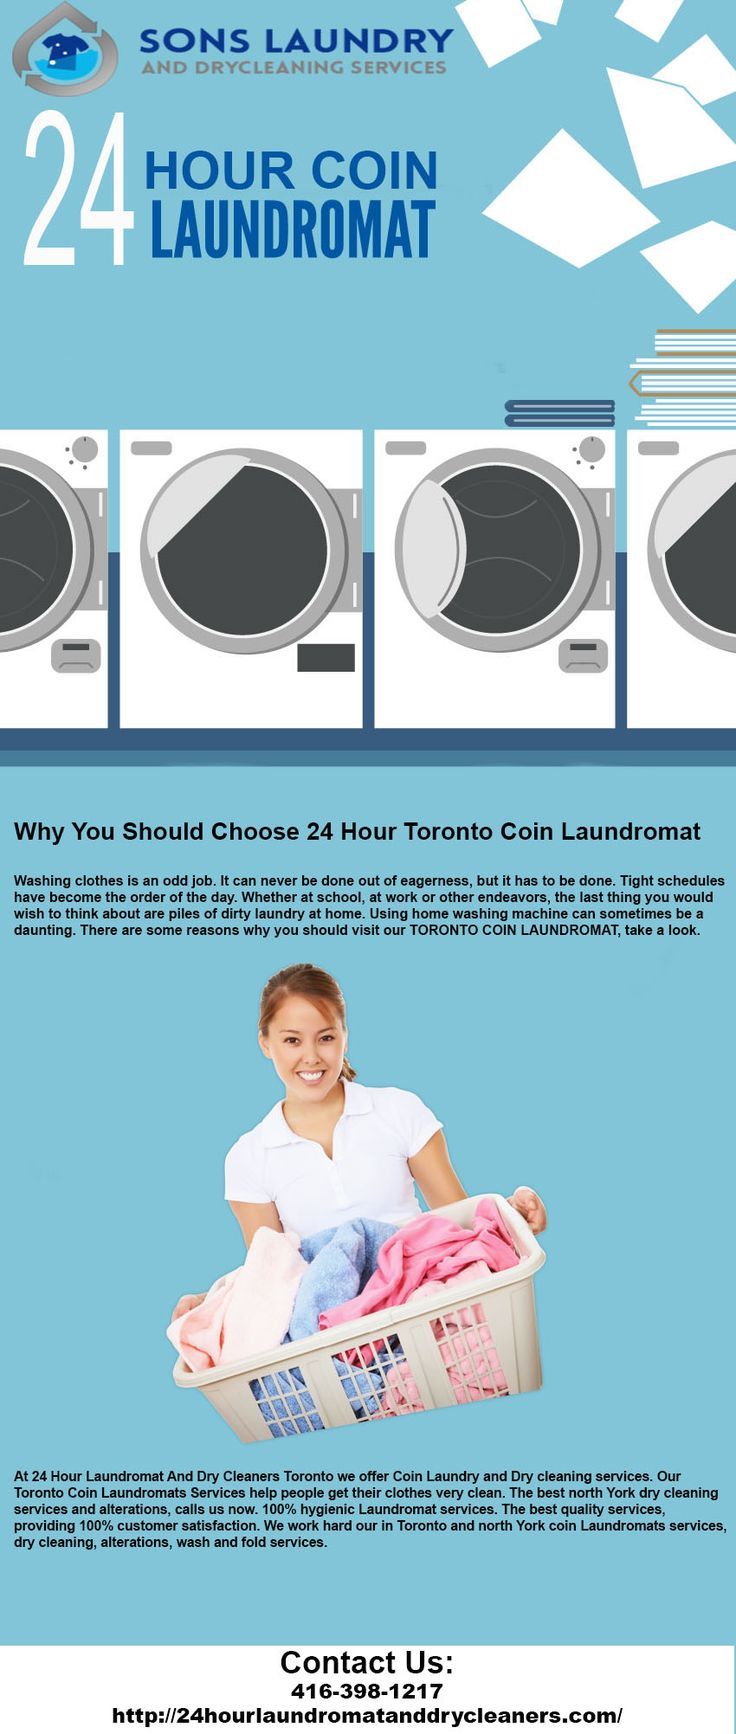 At 24 Hour Laundromat And Dry Cleaners Toronto we offer